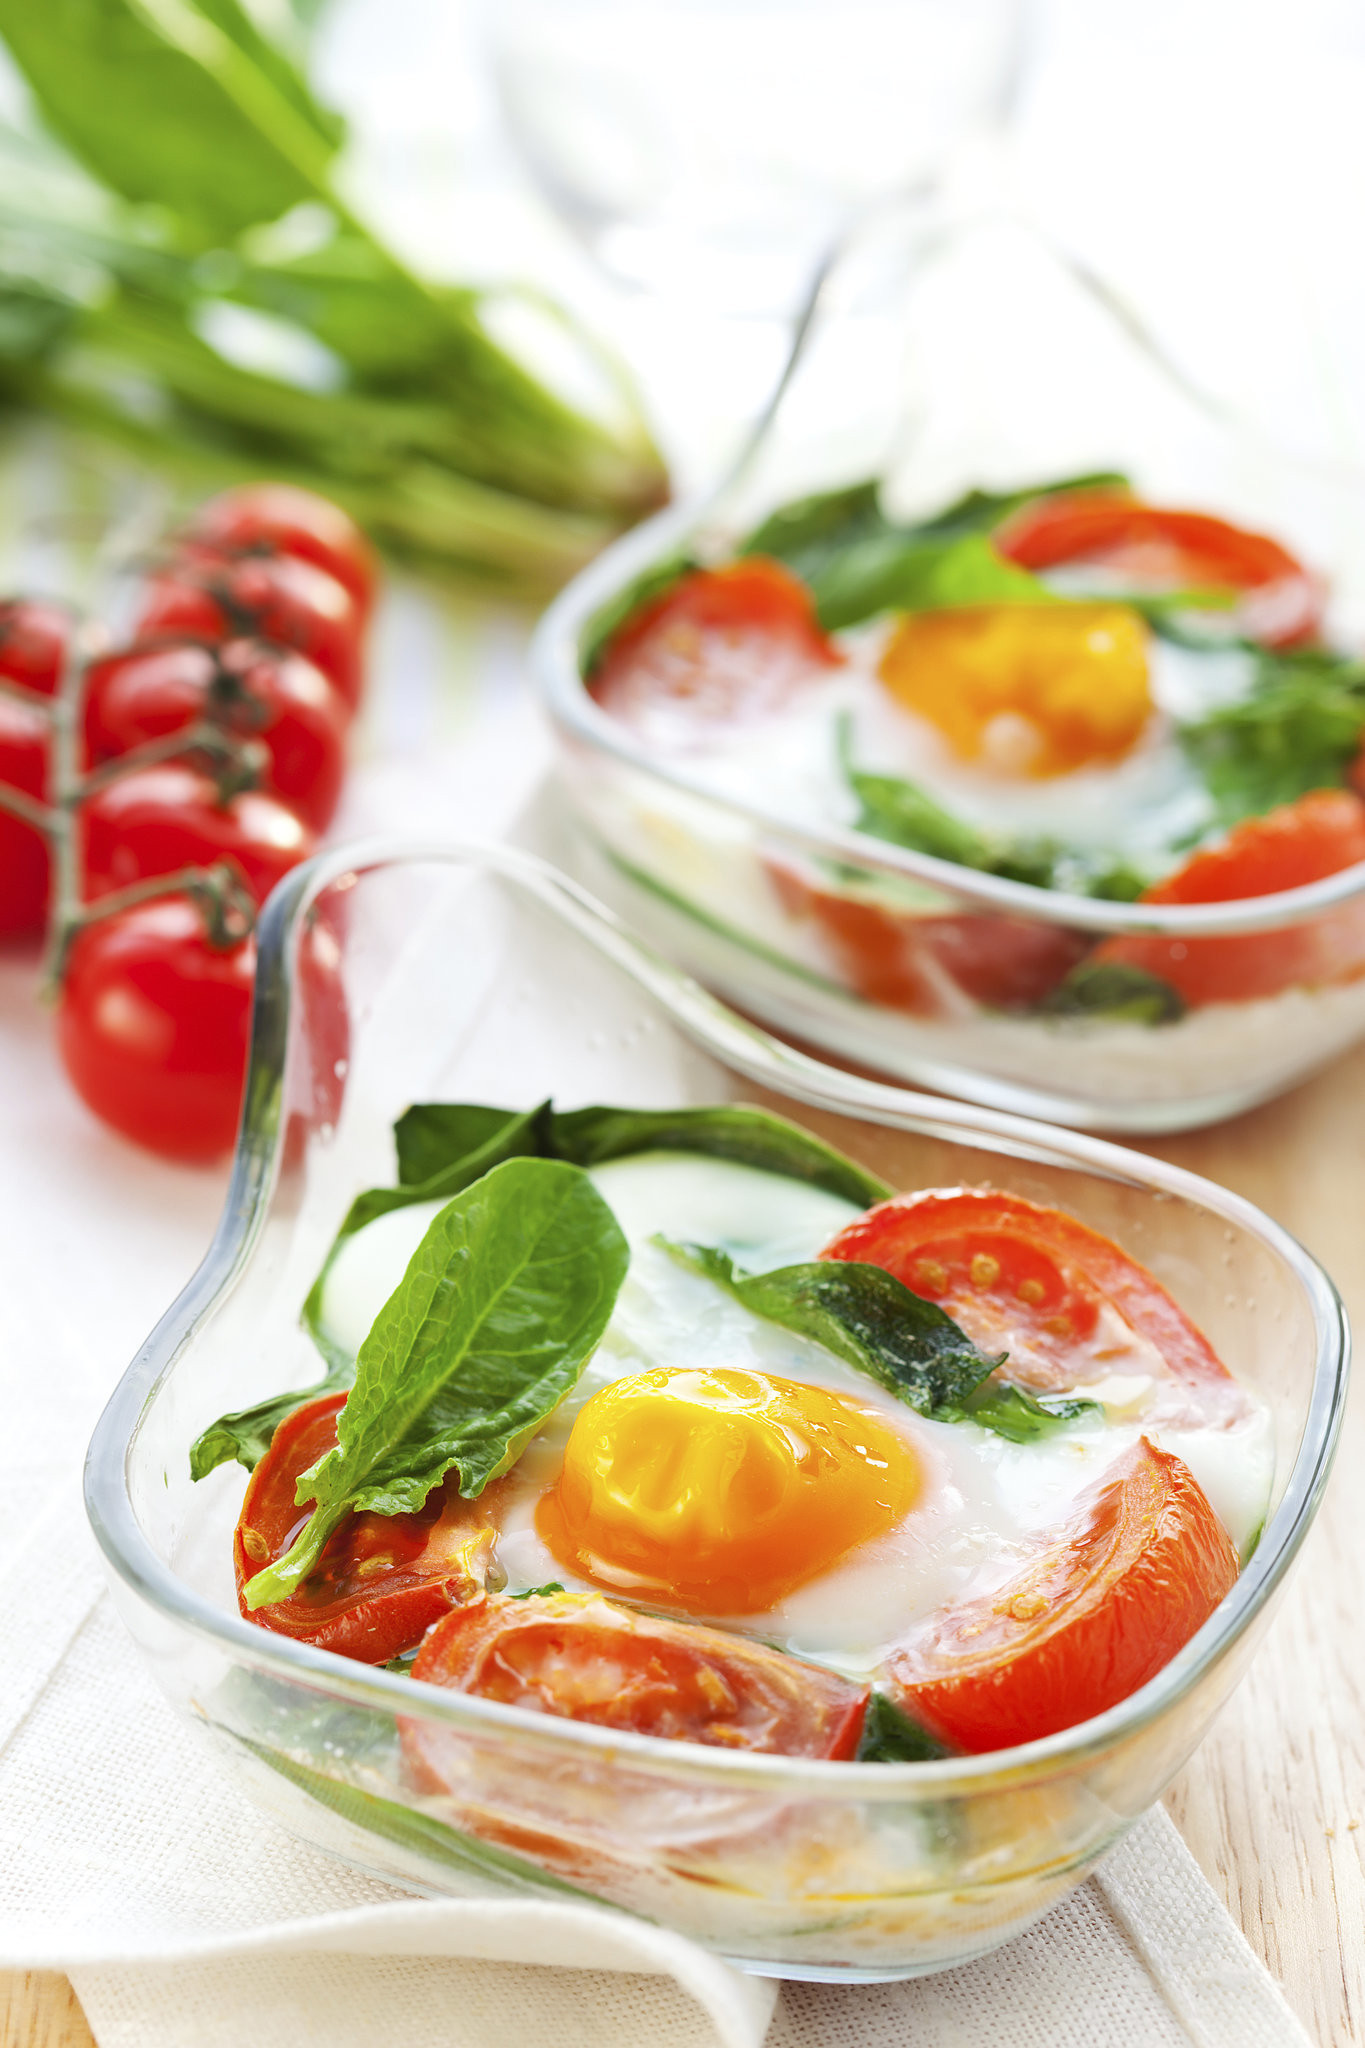 Healthy Protein Breakfast  50 High Protein Breakfasts That Are Healthy And Delicious